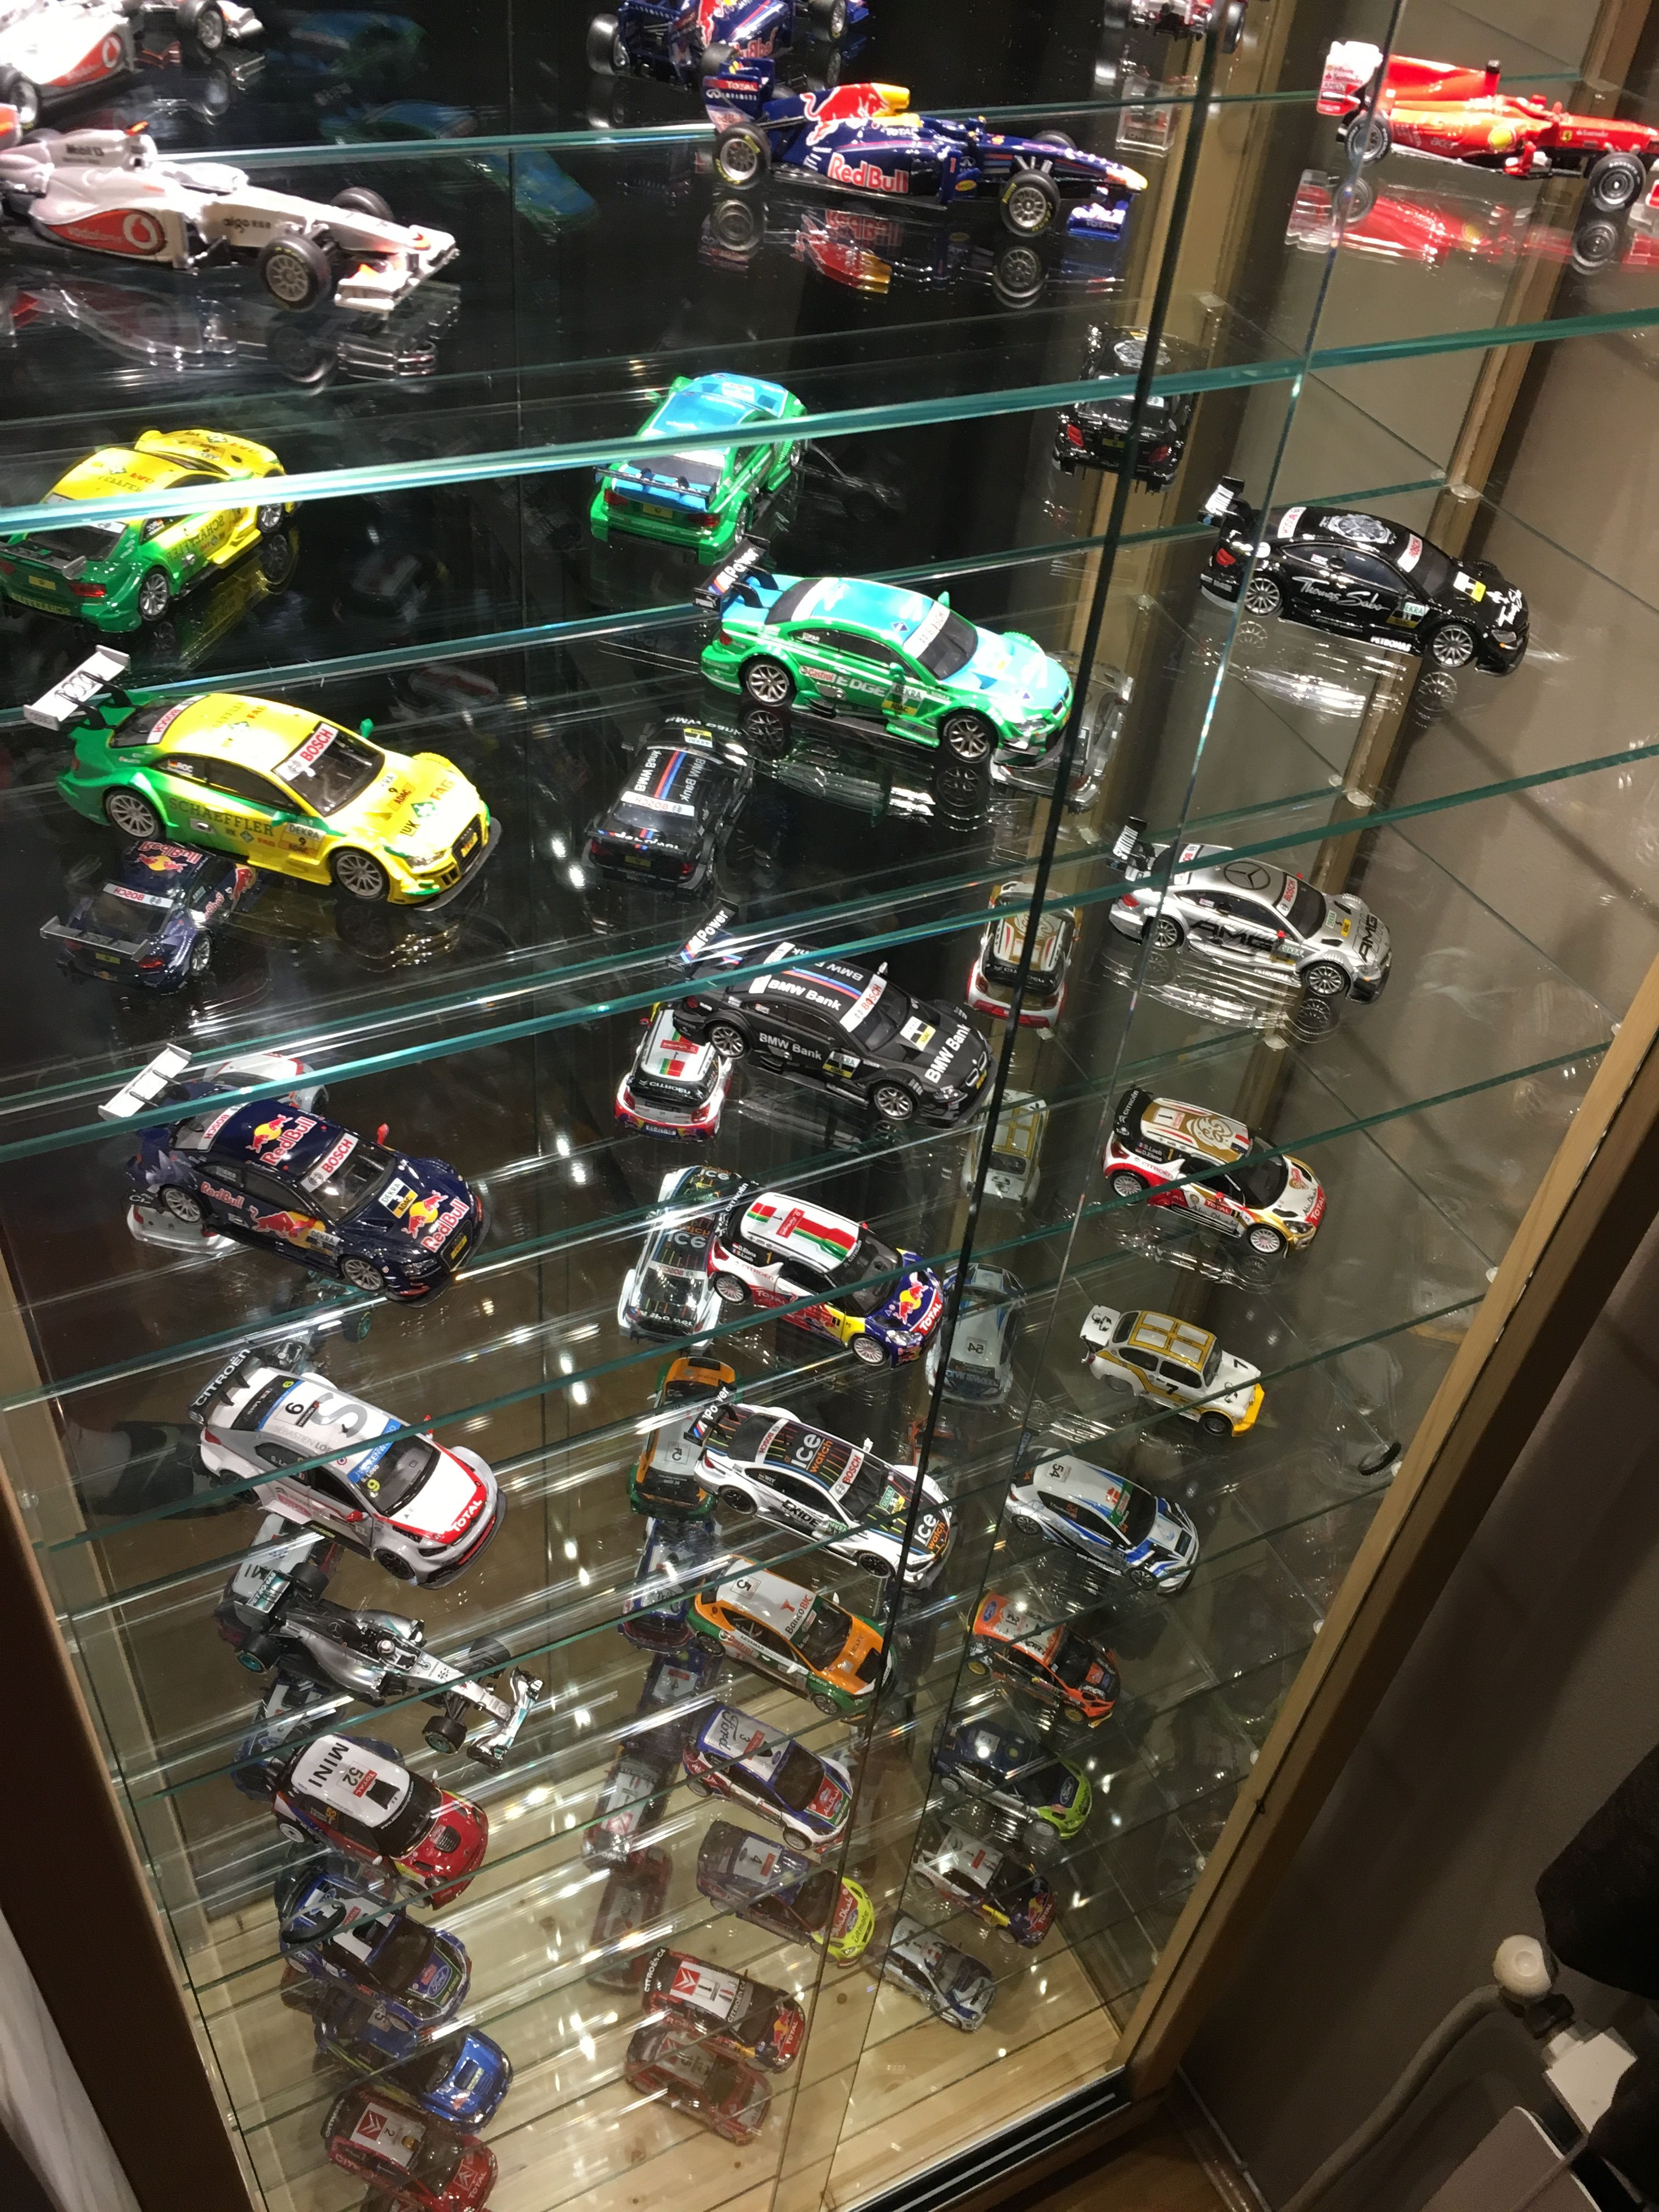 Pin By Keith On Stalaza Za Kolicki Glass Cabinets Display Model Cars Collection Diecast Cars Display